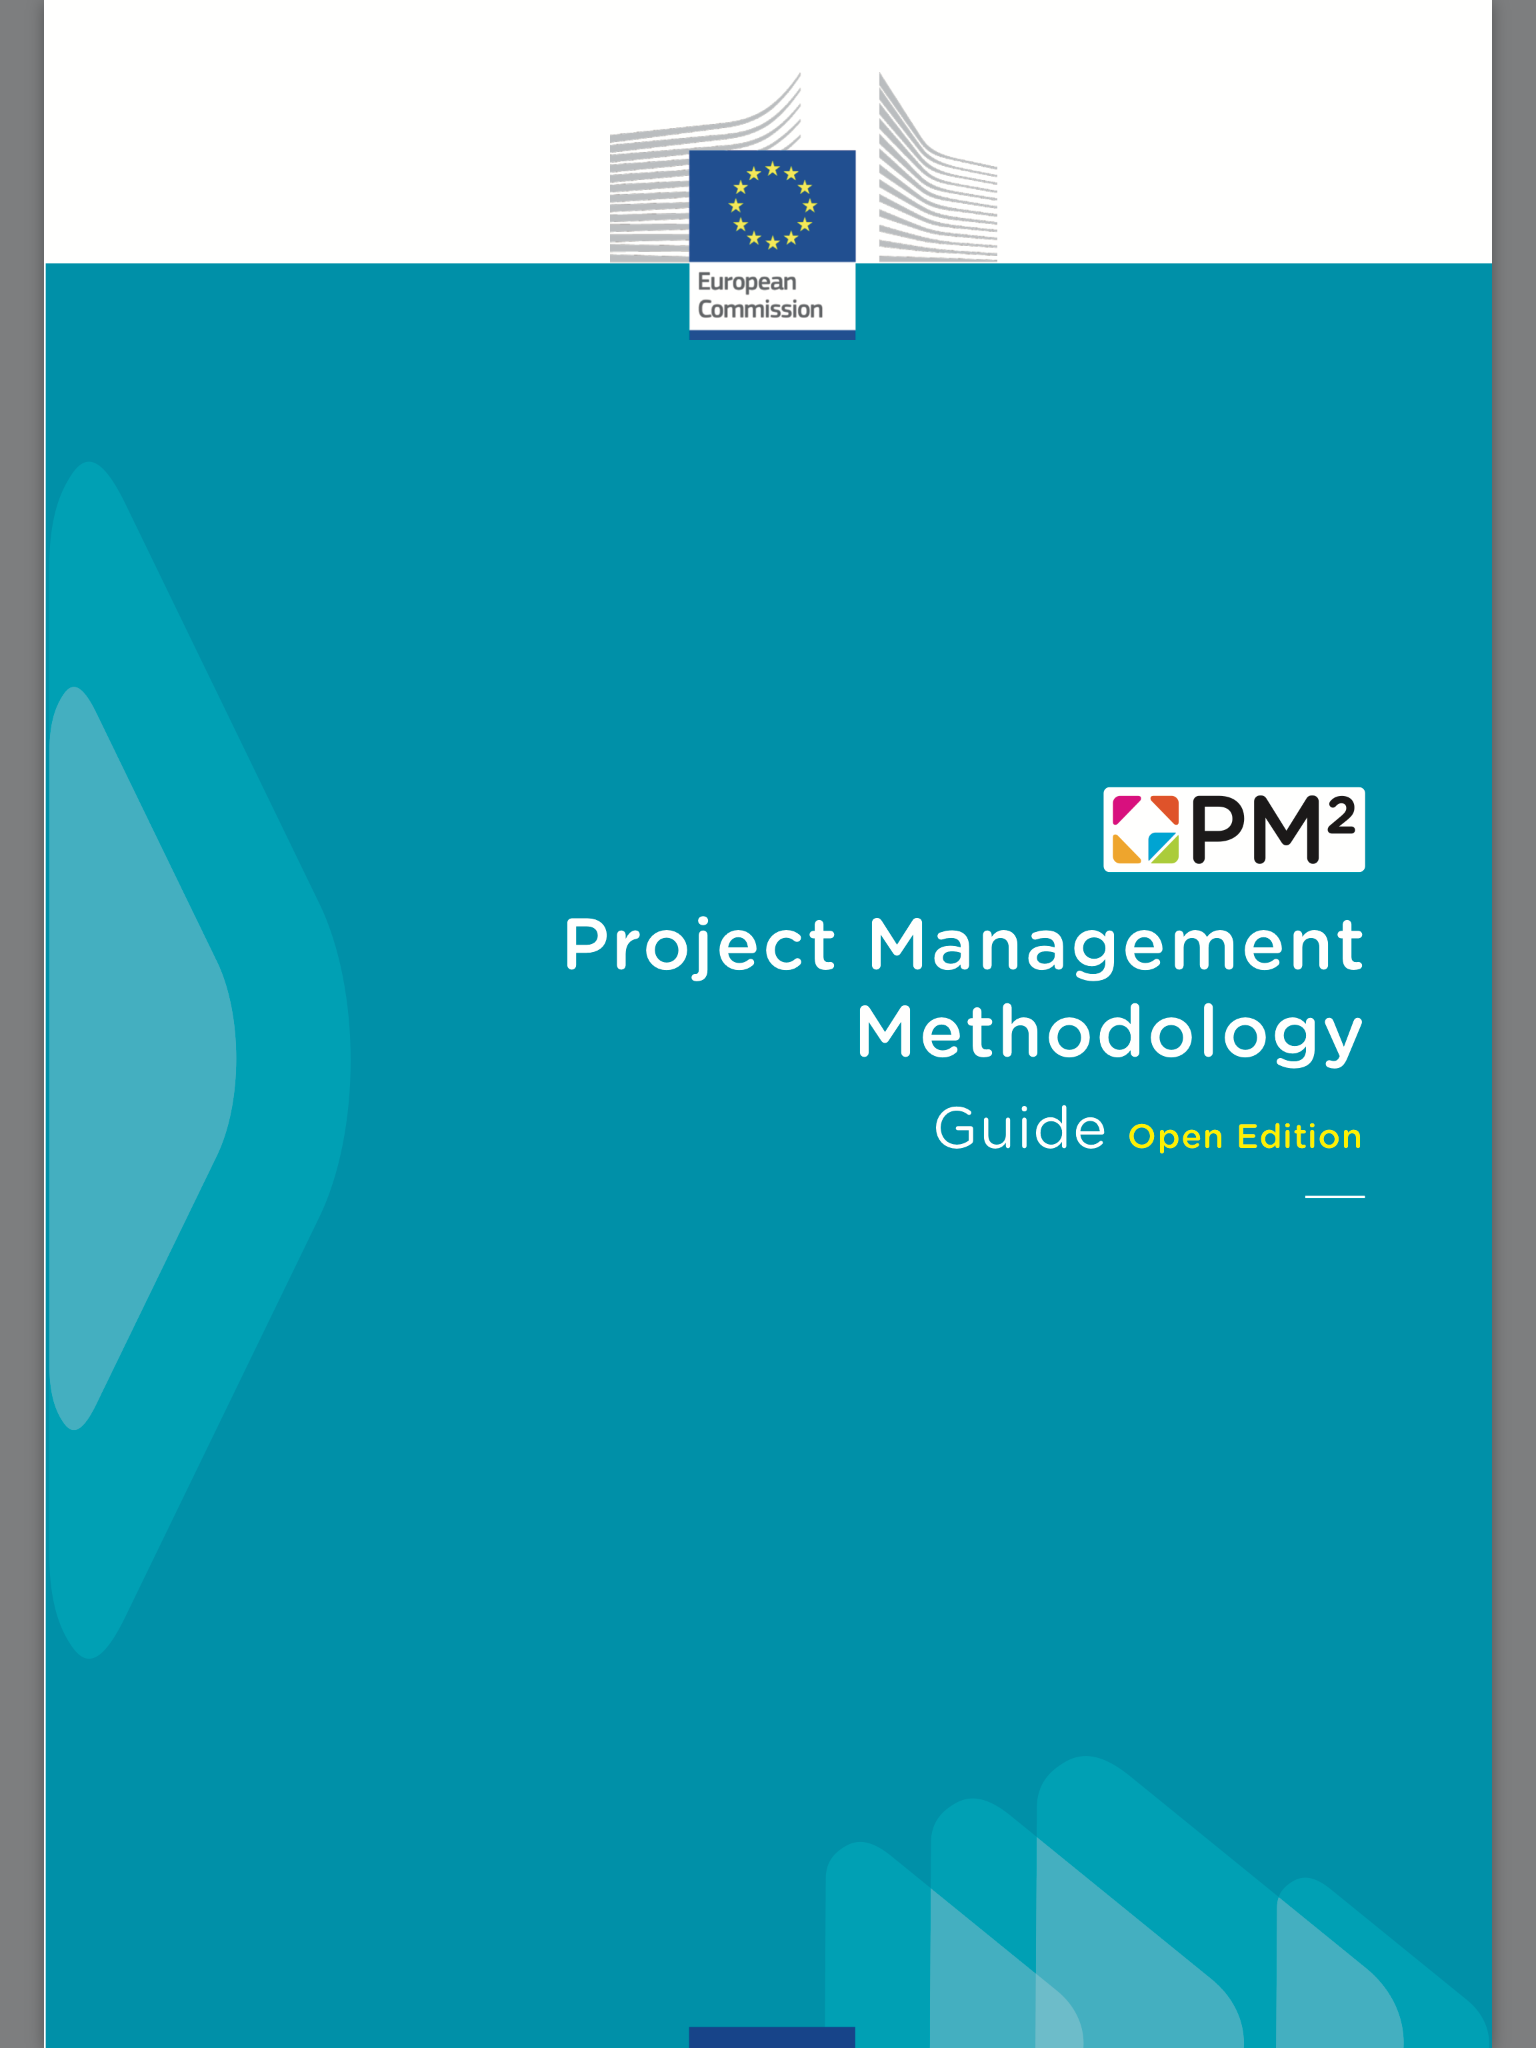 Eu commission released new pm methodology pm2 guide henny eu commission released new pm methodology pm2 guide henny portmans blog 1betcityfo Choice Image